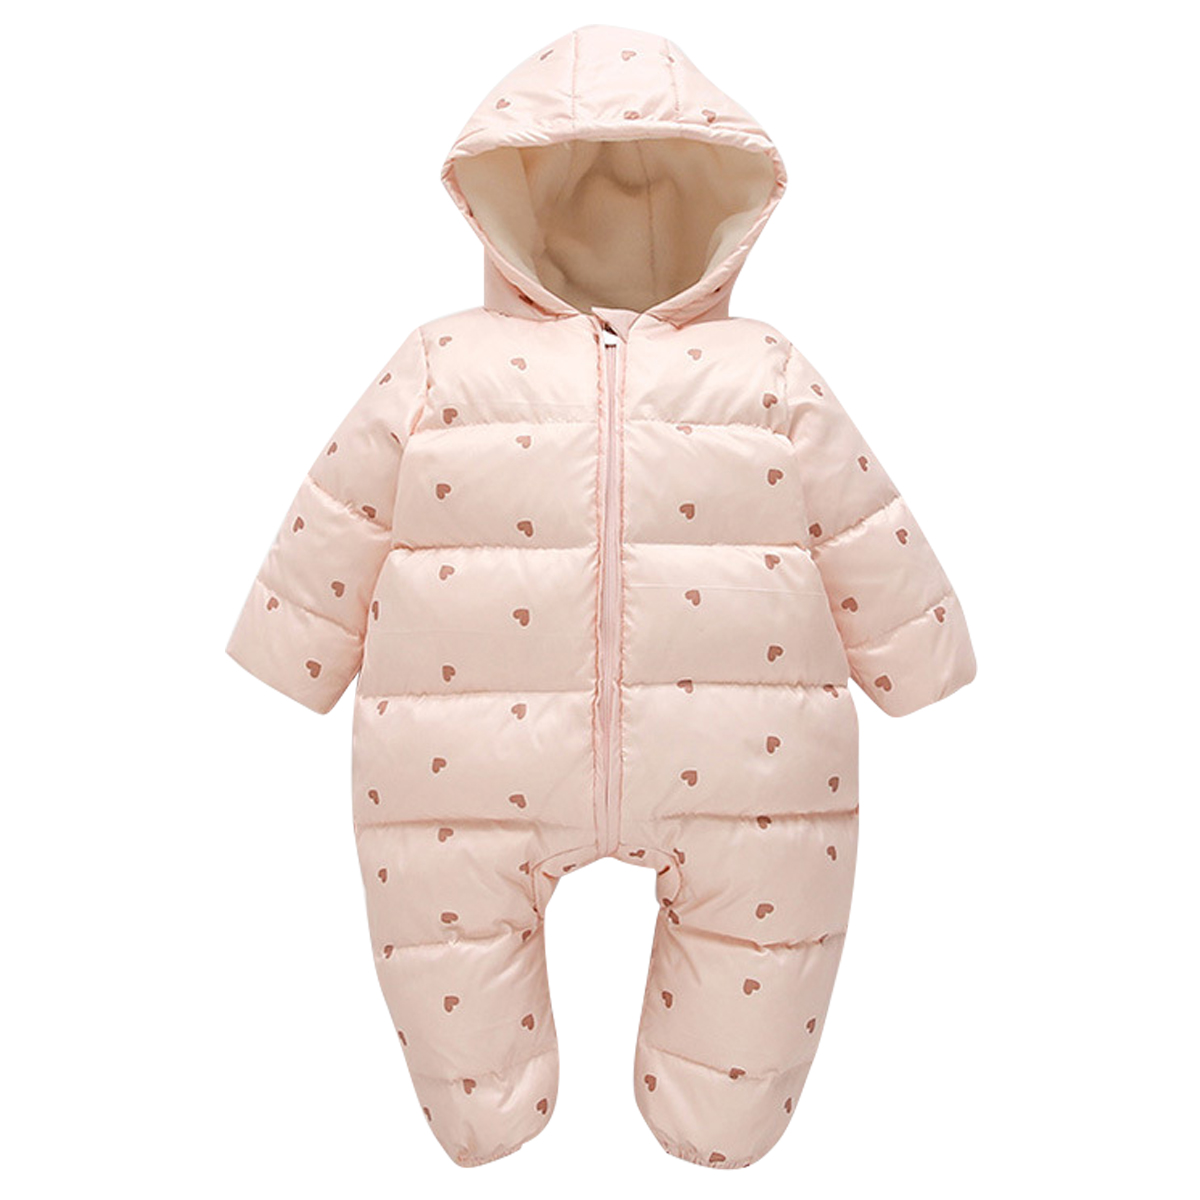 04d71cb71ad0 Newborn Baby Winter Duck Down Snowsuit Romper Kids Warm Coat Hooded ...